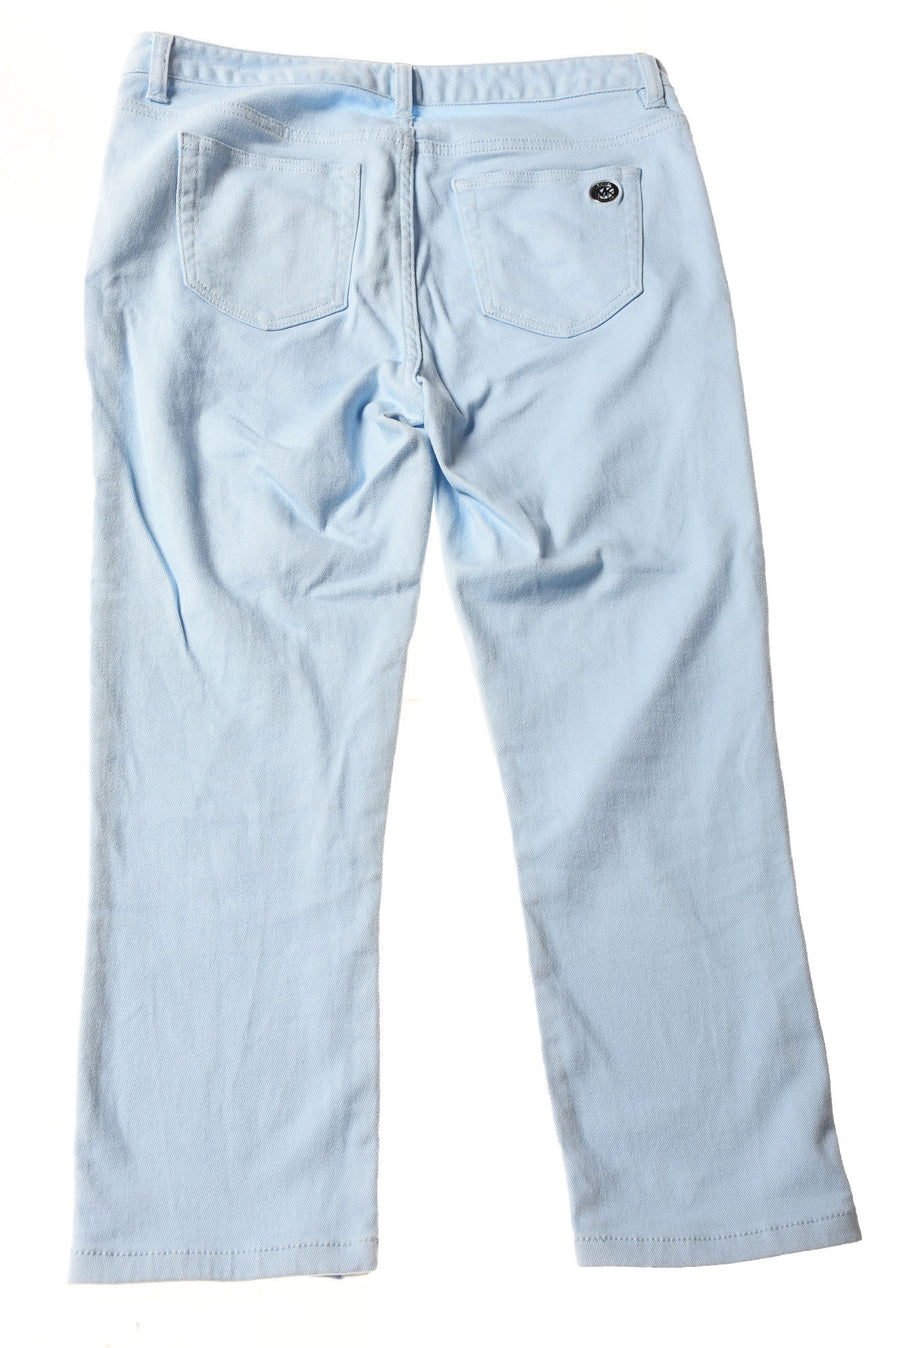 USED Michael Kors Women's Shorts 4 Baby Blue